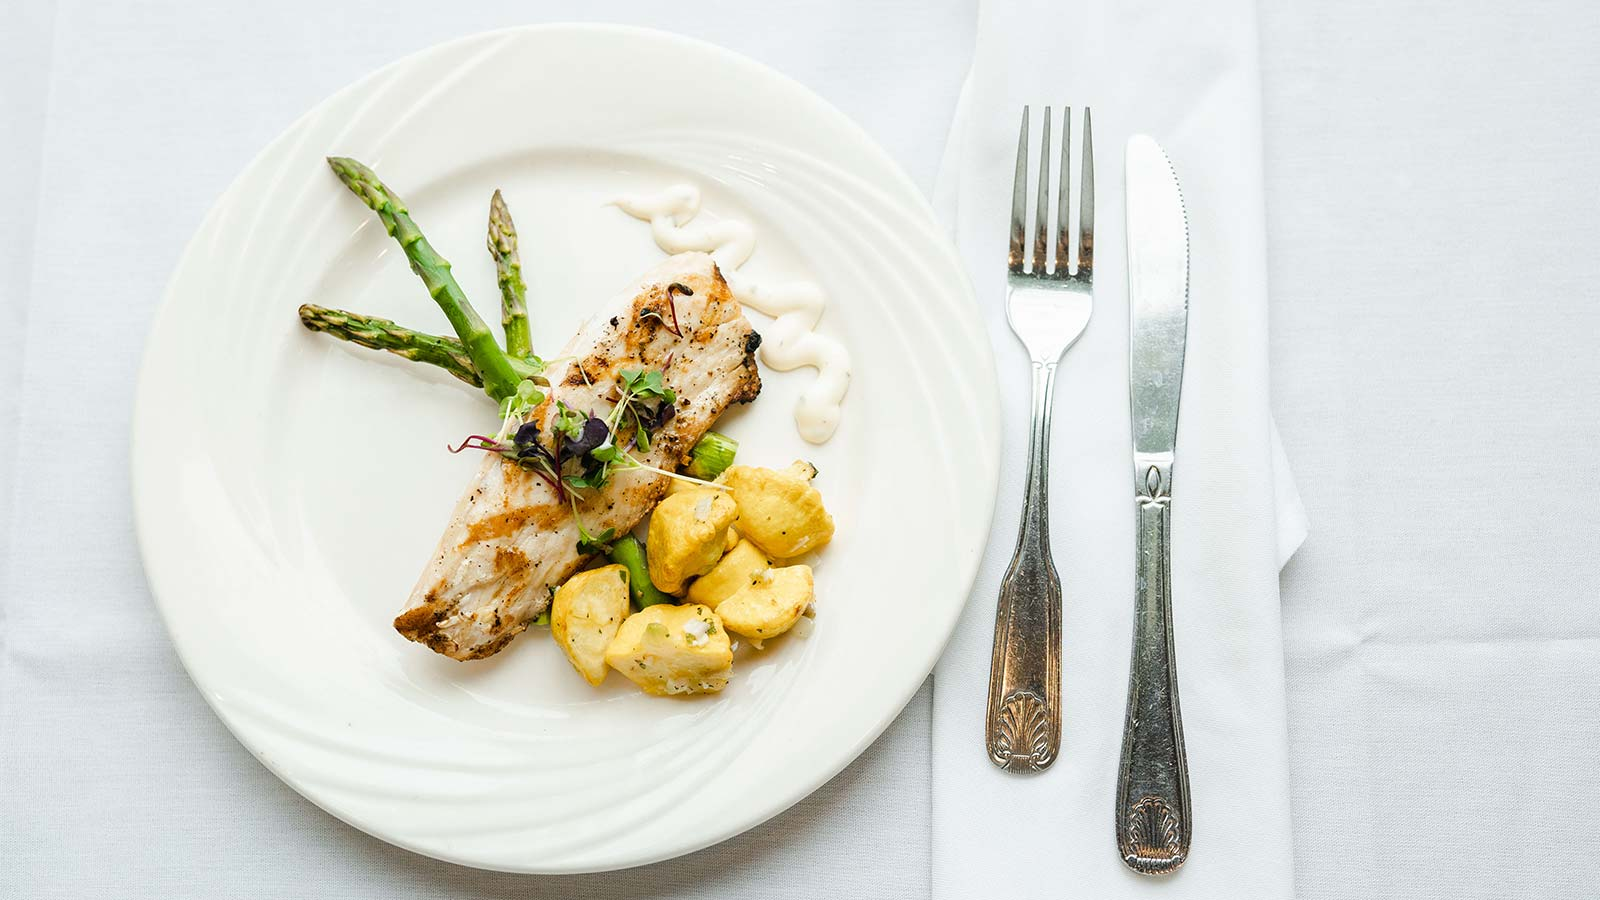 View of elegantly plated grilled chicken breast with potatoes and asparagus